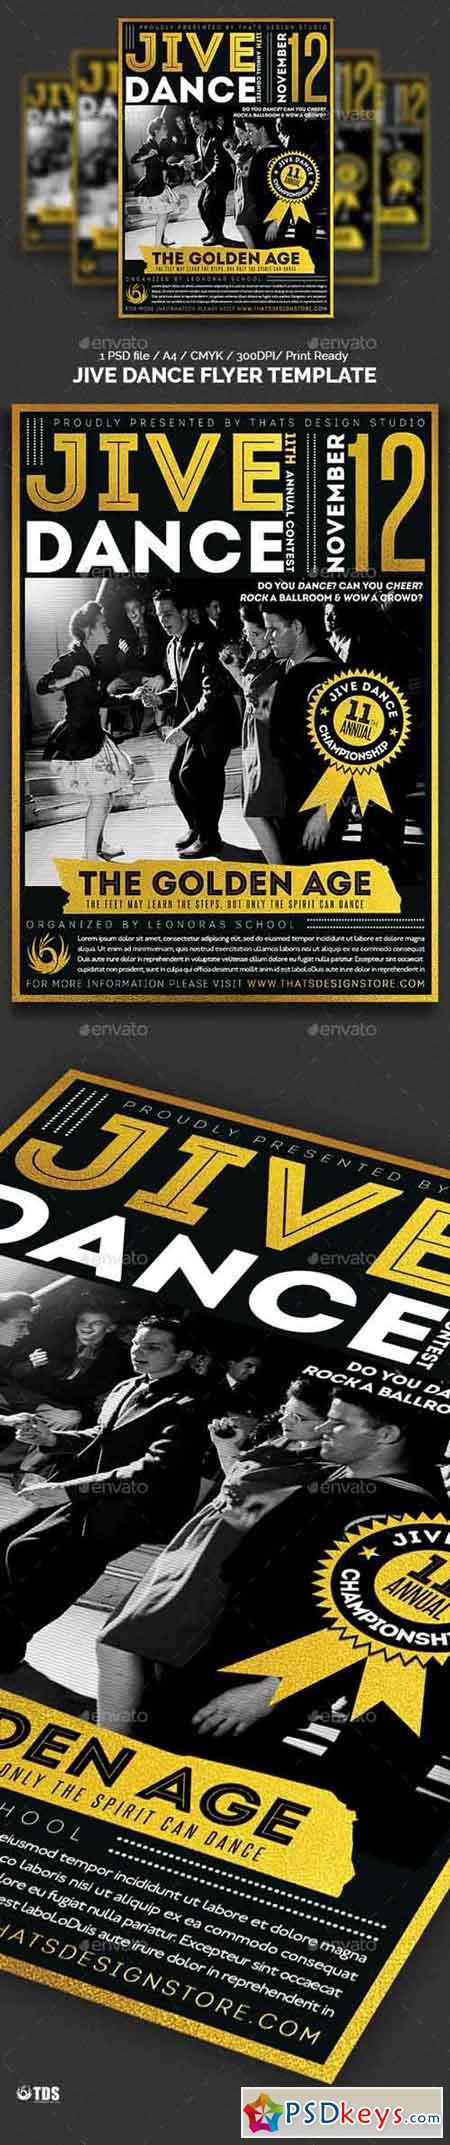 Jive Dance Flyer Template 13990263